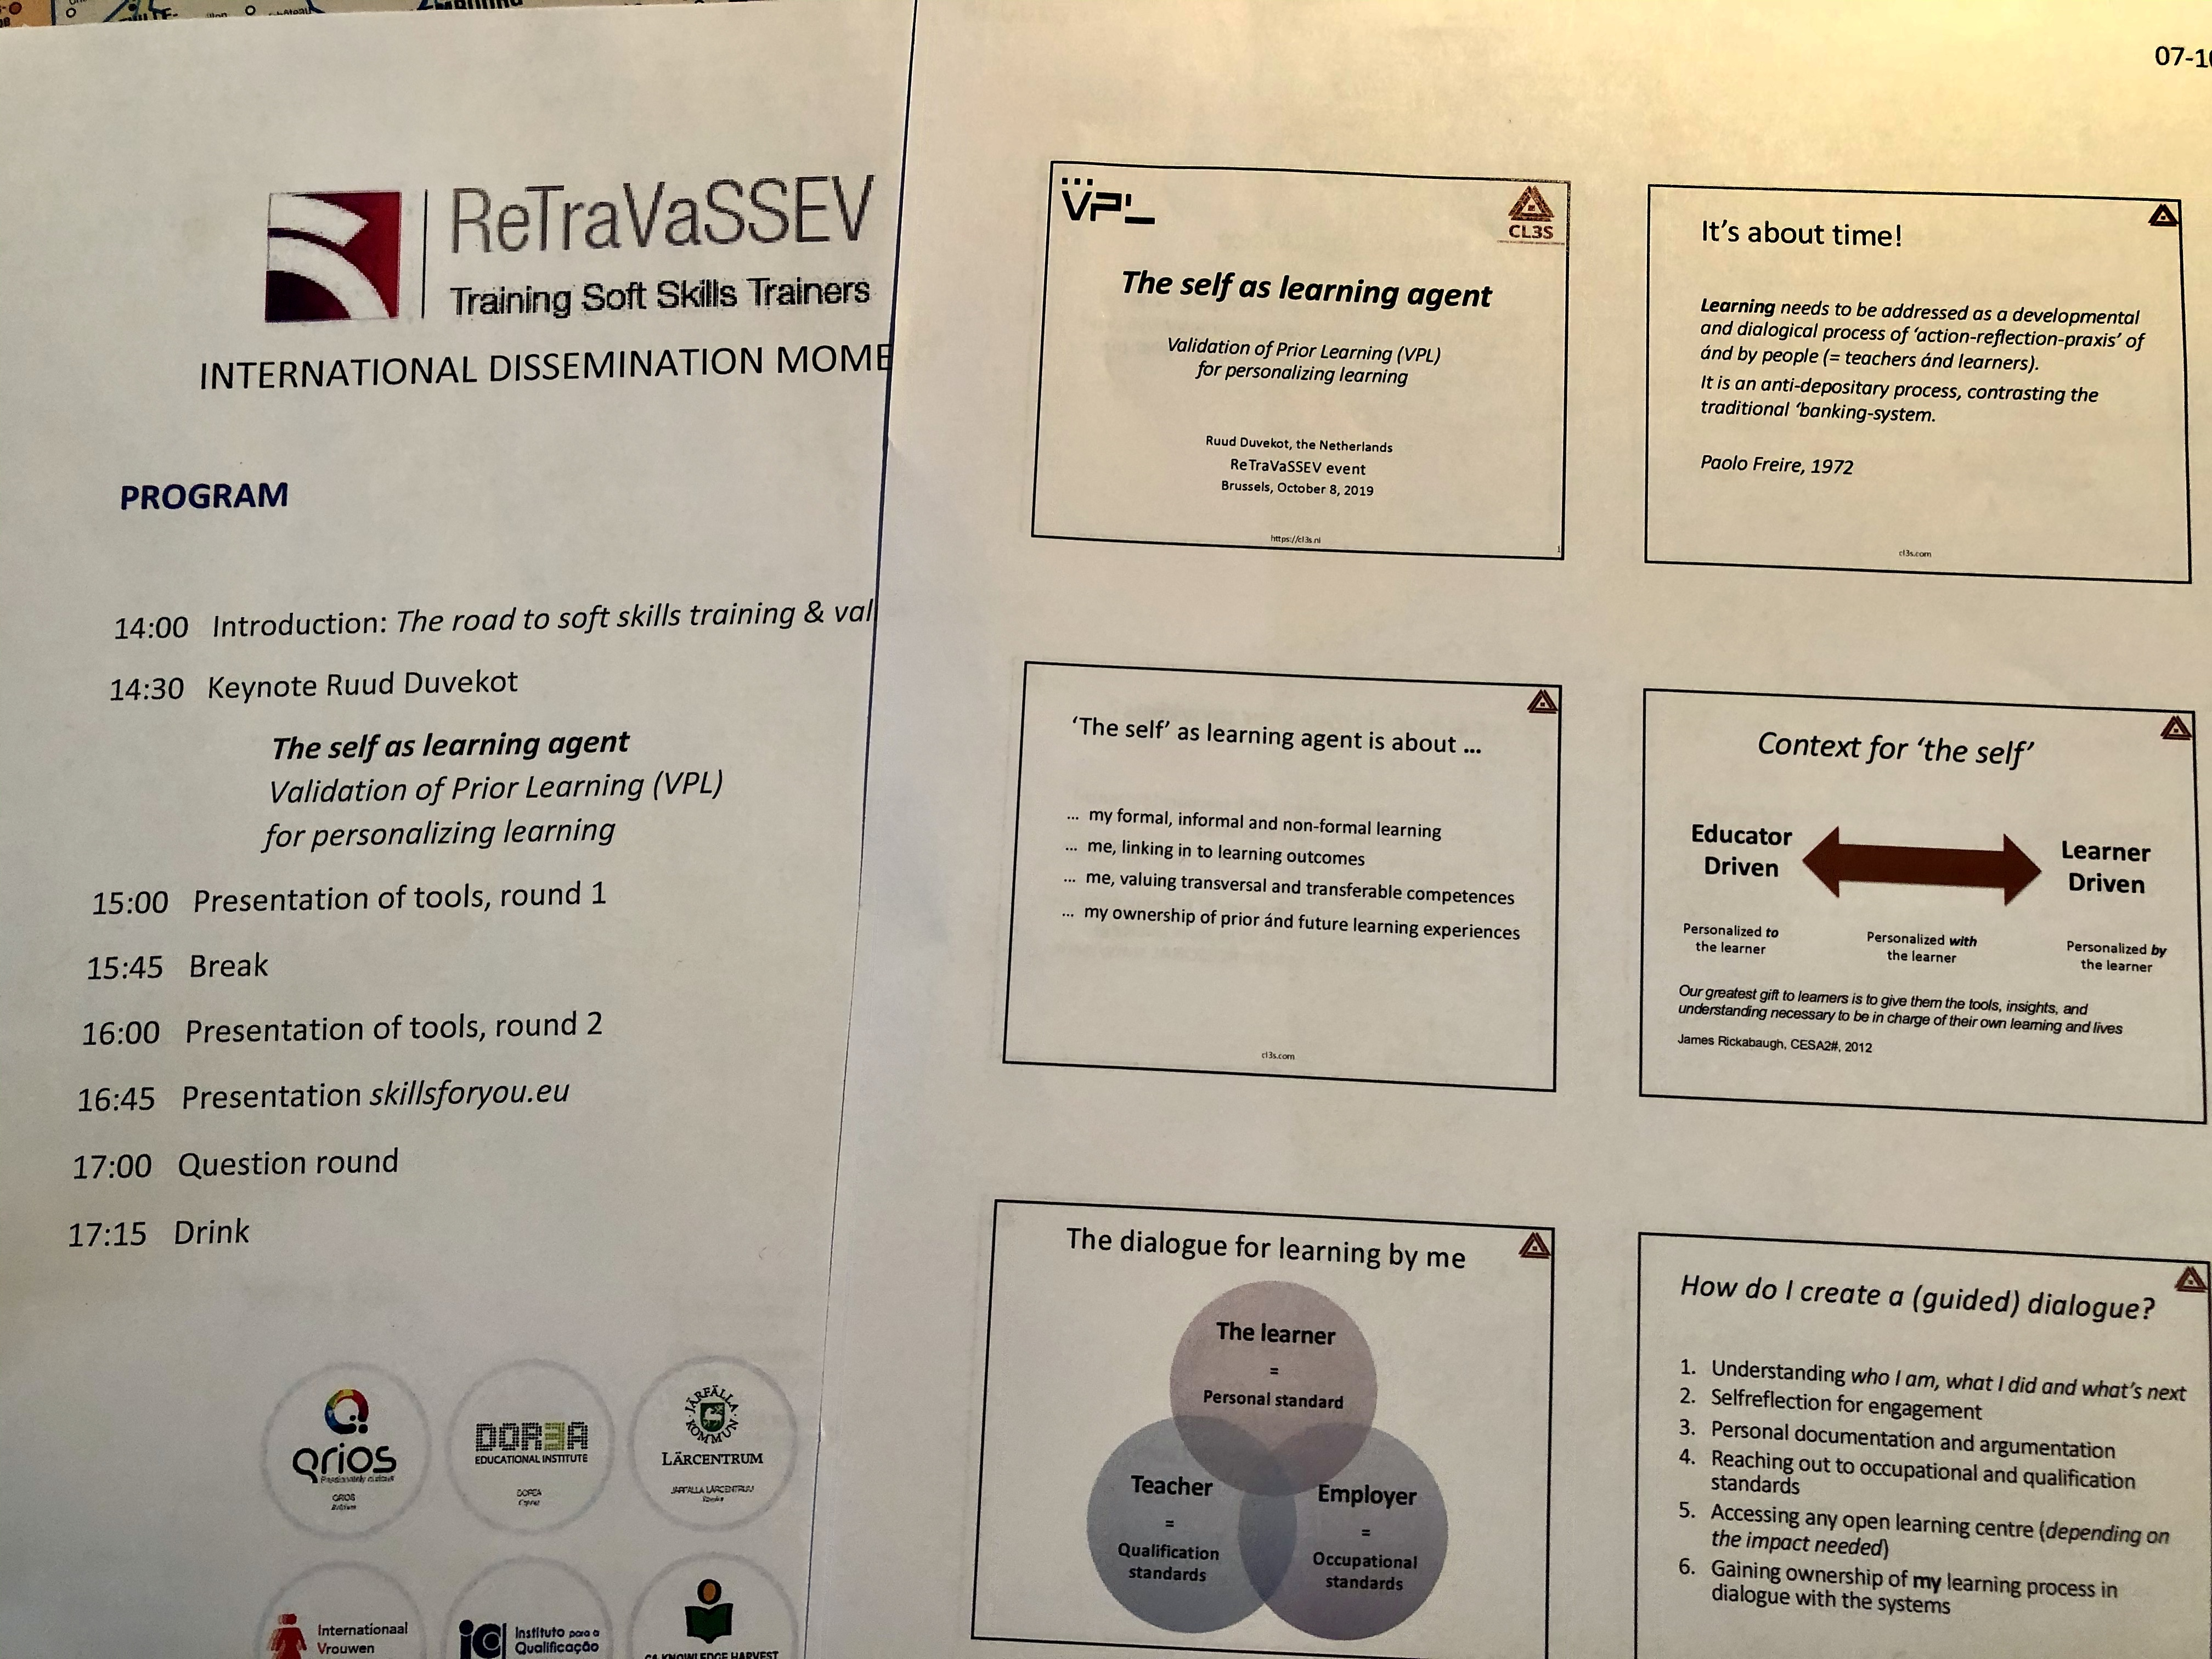 ReTraVaSSEV for soft skills